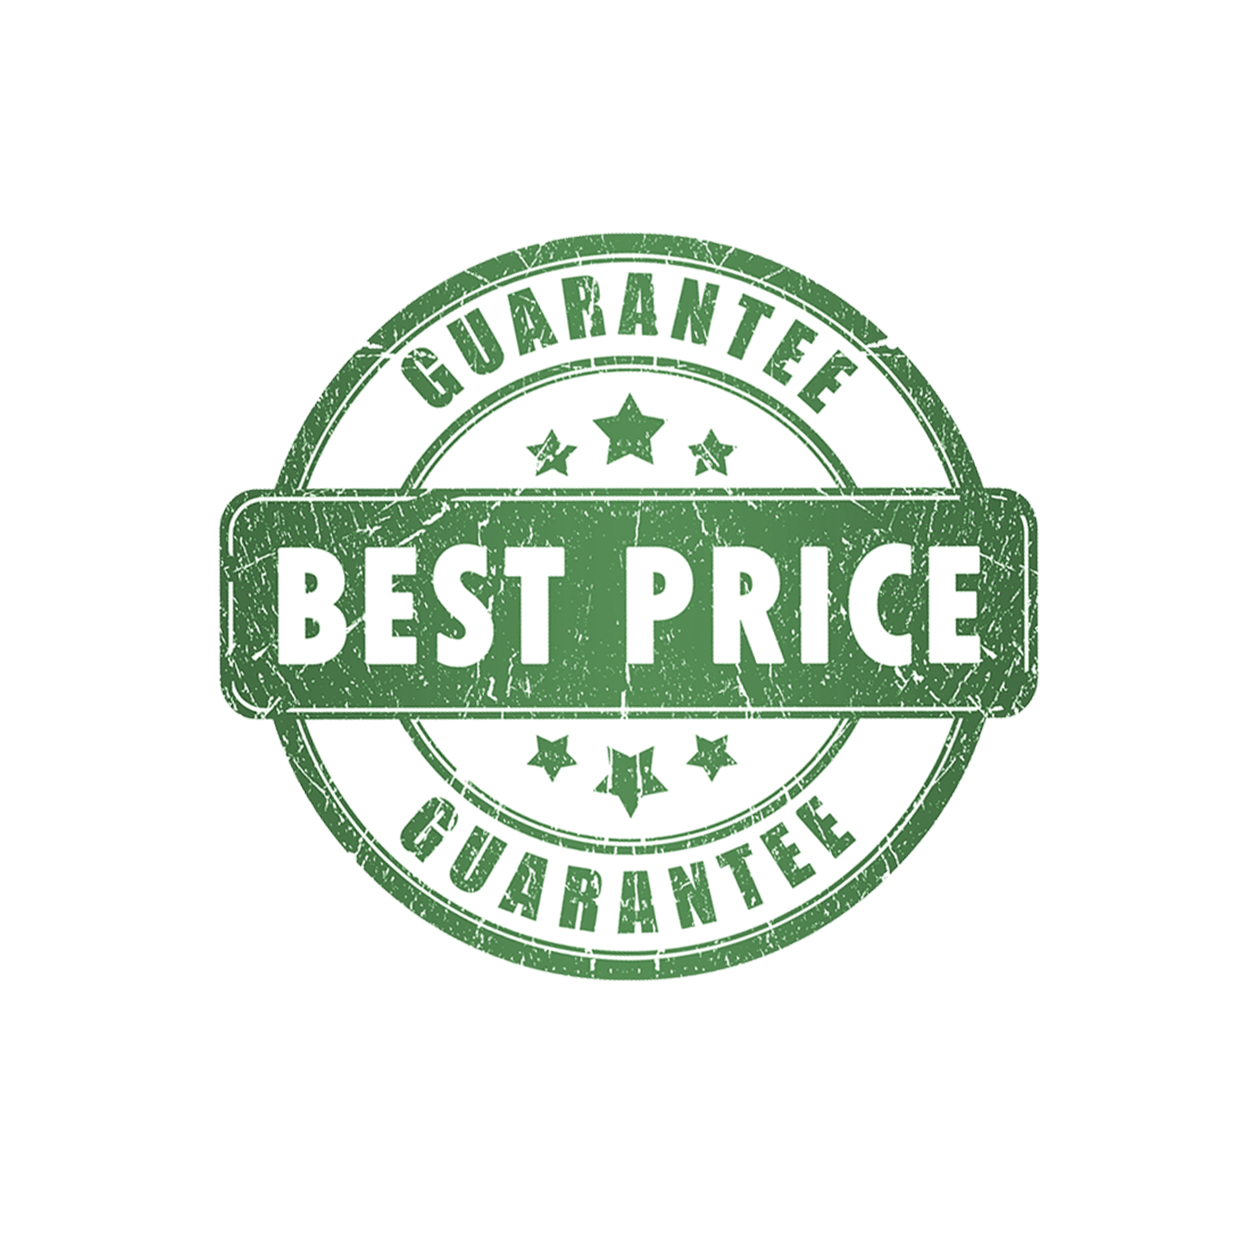 You will not find a better price for equal products and services anywhere. If you can,we will refund the difference.